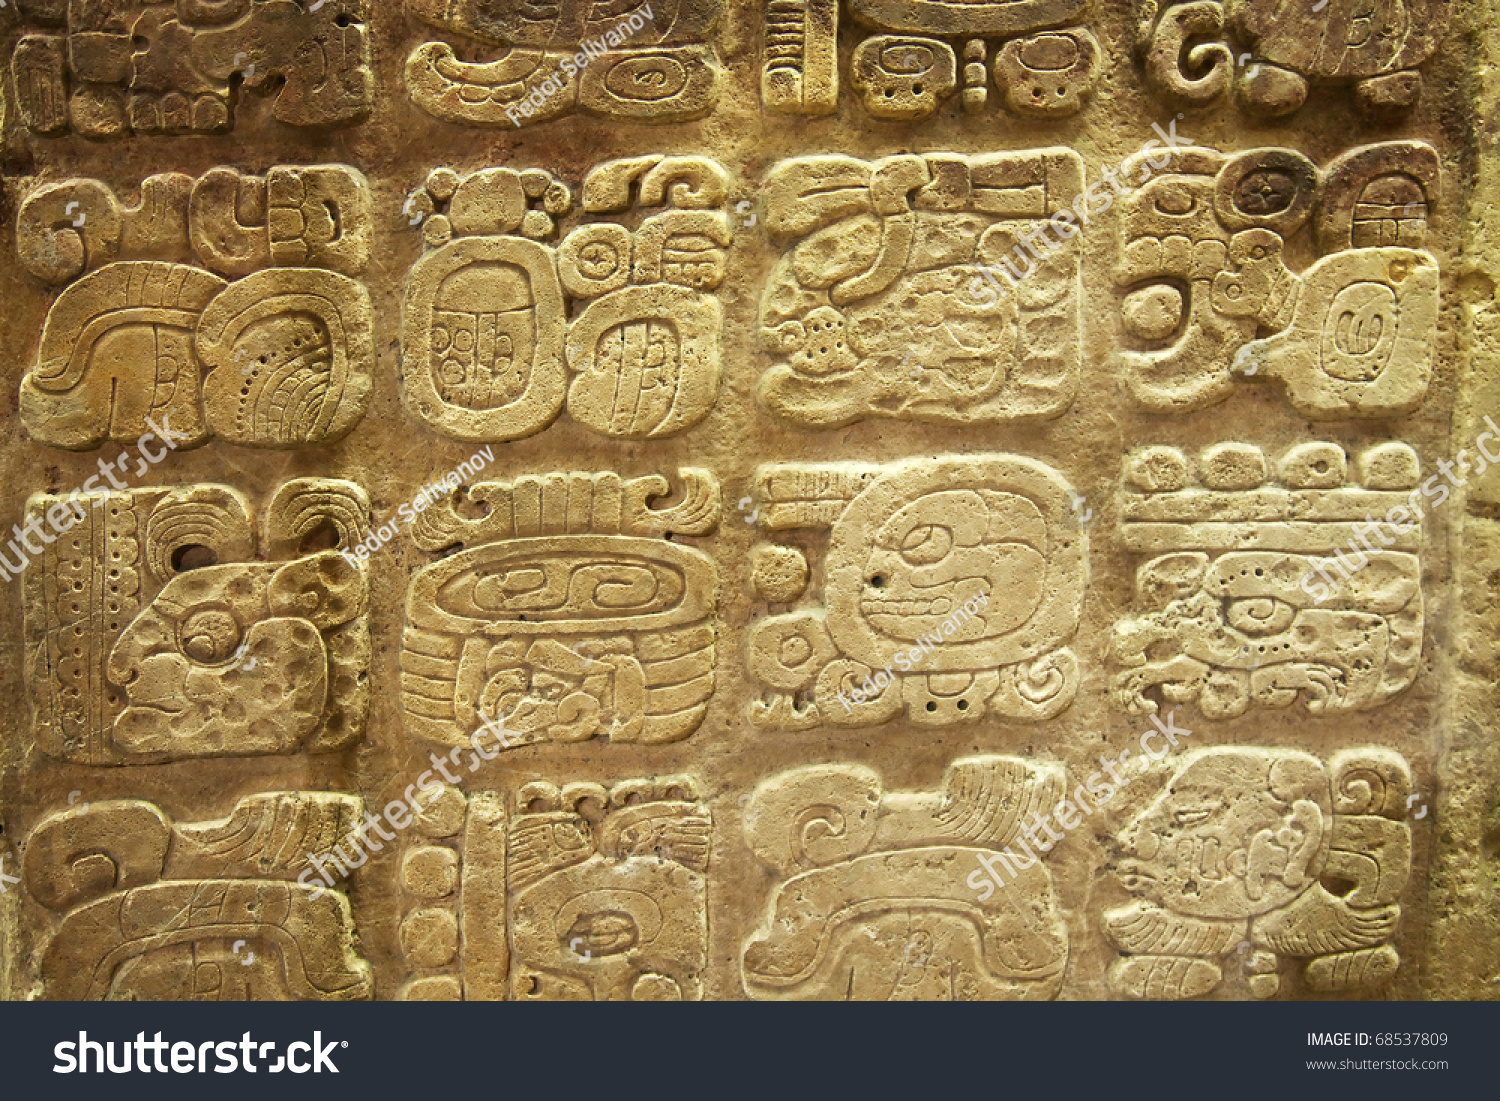 Aztec stone carving museum stock photo shutterstock